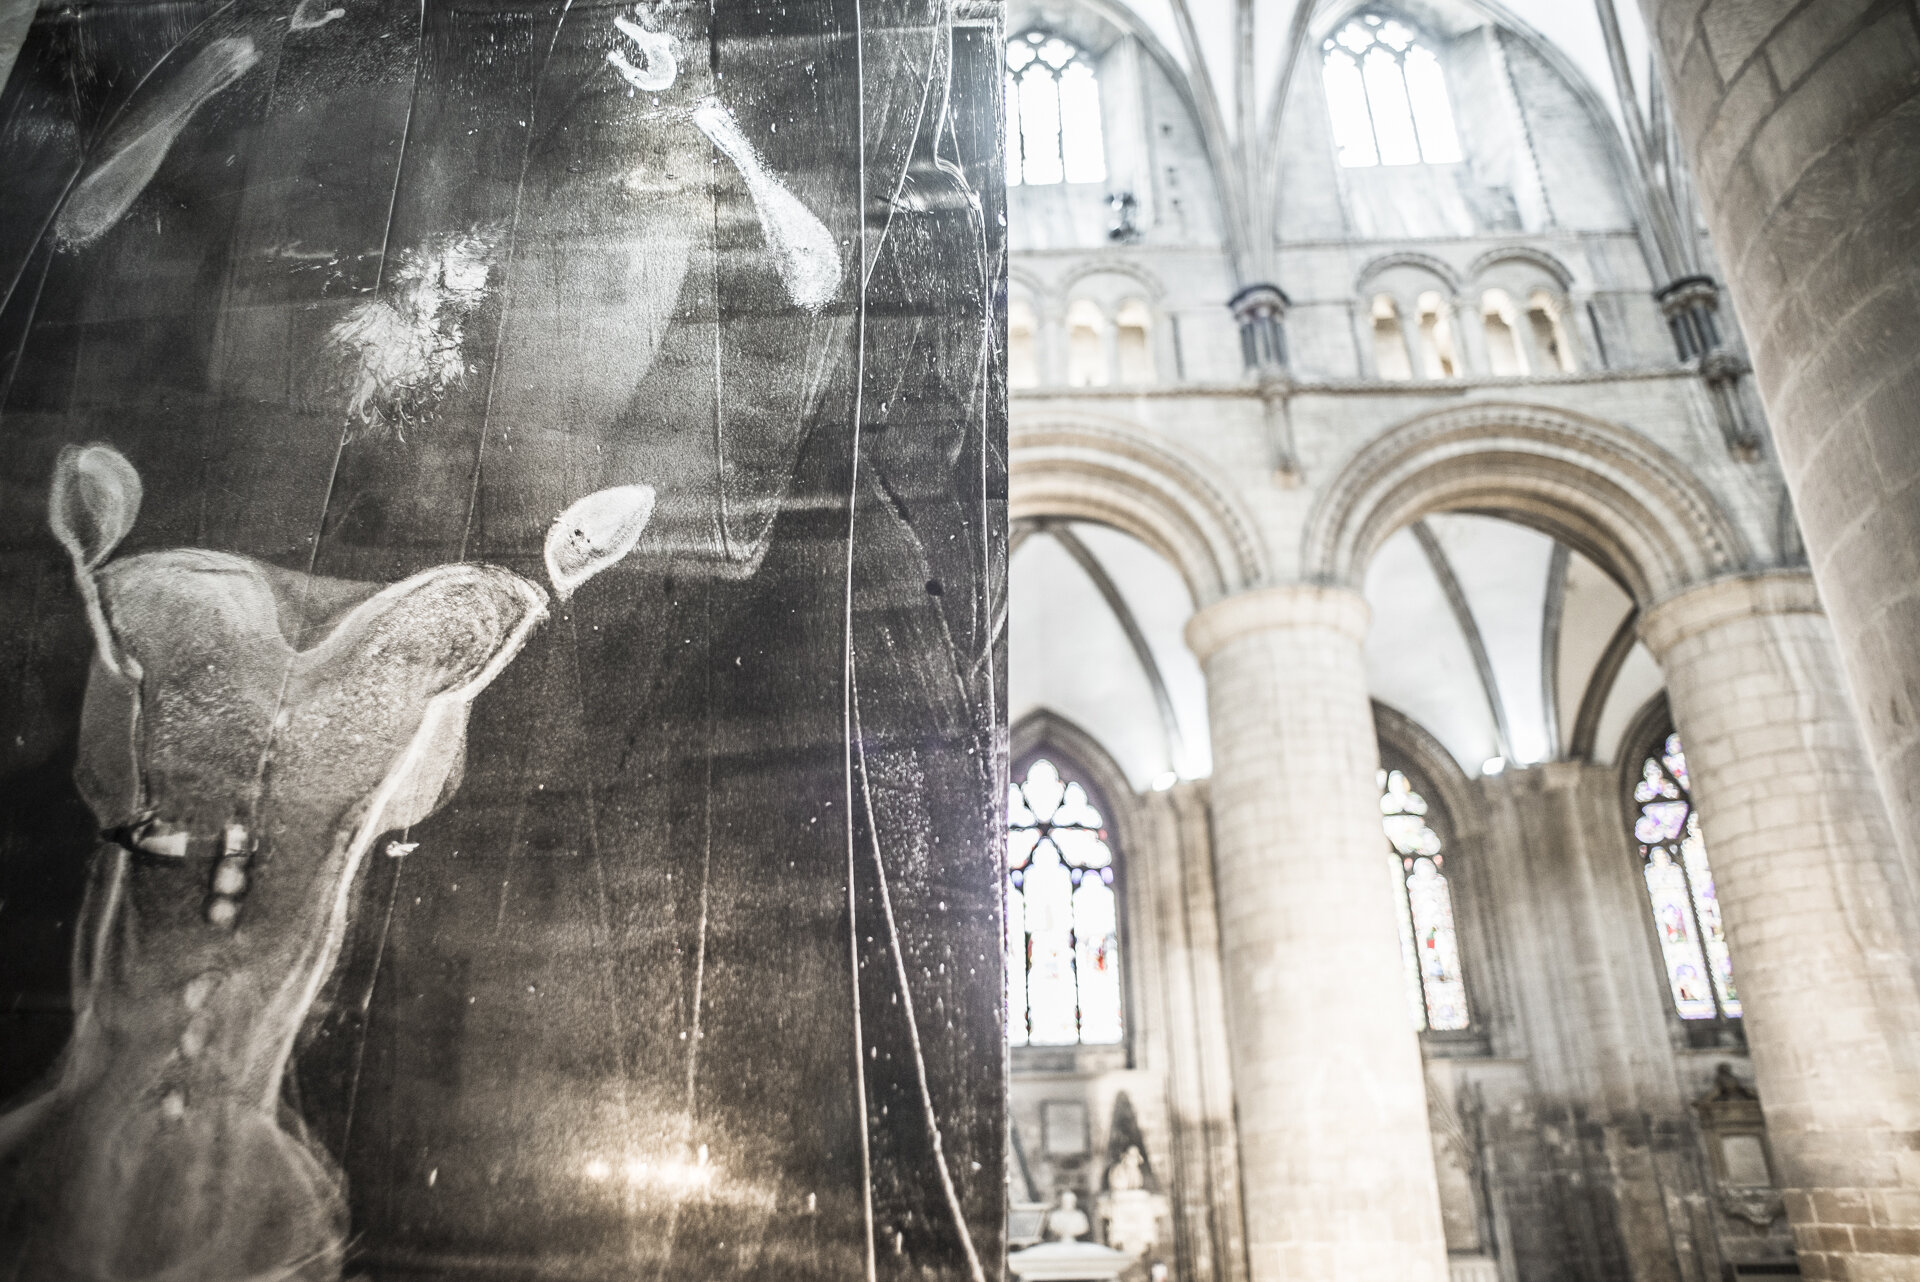 SHIFT ORIGINAL ARTWORKS - 'Shift' Installation (as exhibited at Gloucester Cathedral ) will be shown from 12-18th October 2019, open daily from 9:00 - 21:00.The installation will act as a backdrop & set the scene for outreach projects, participatory workshops based on the arts & well-being & high quality collaborative performances in music, dance & contemporary art.